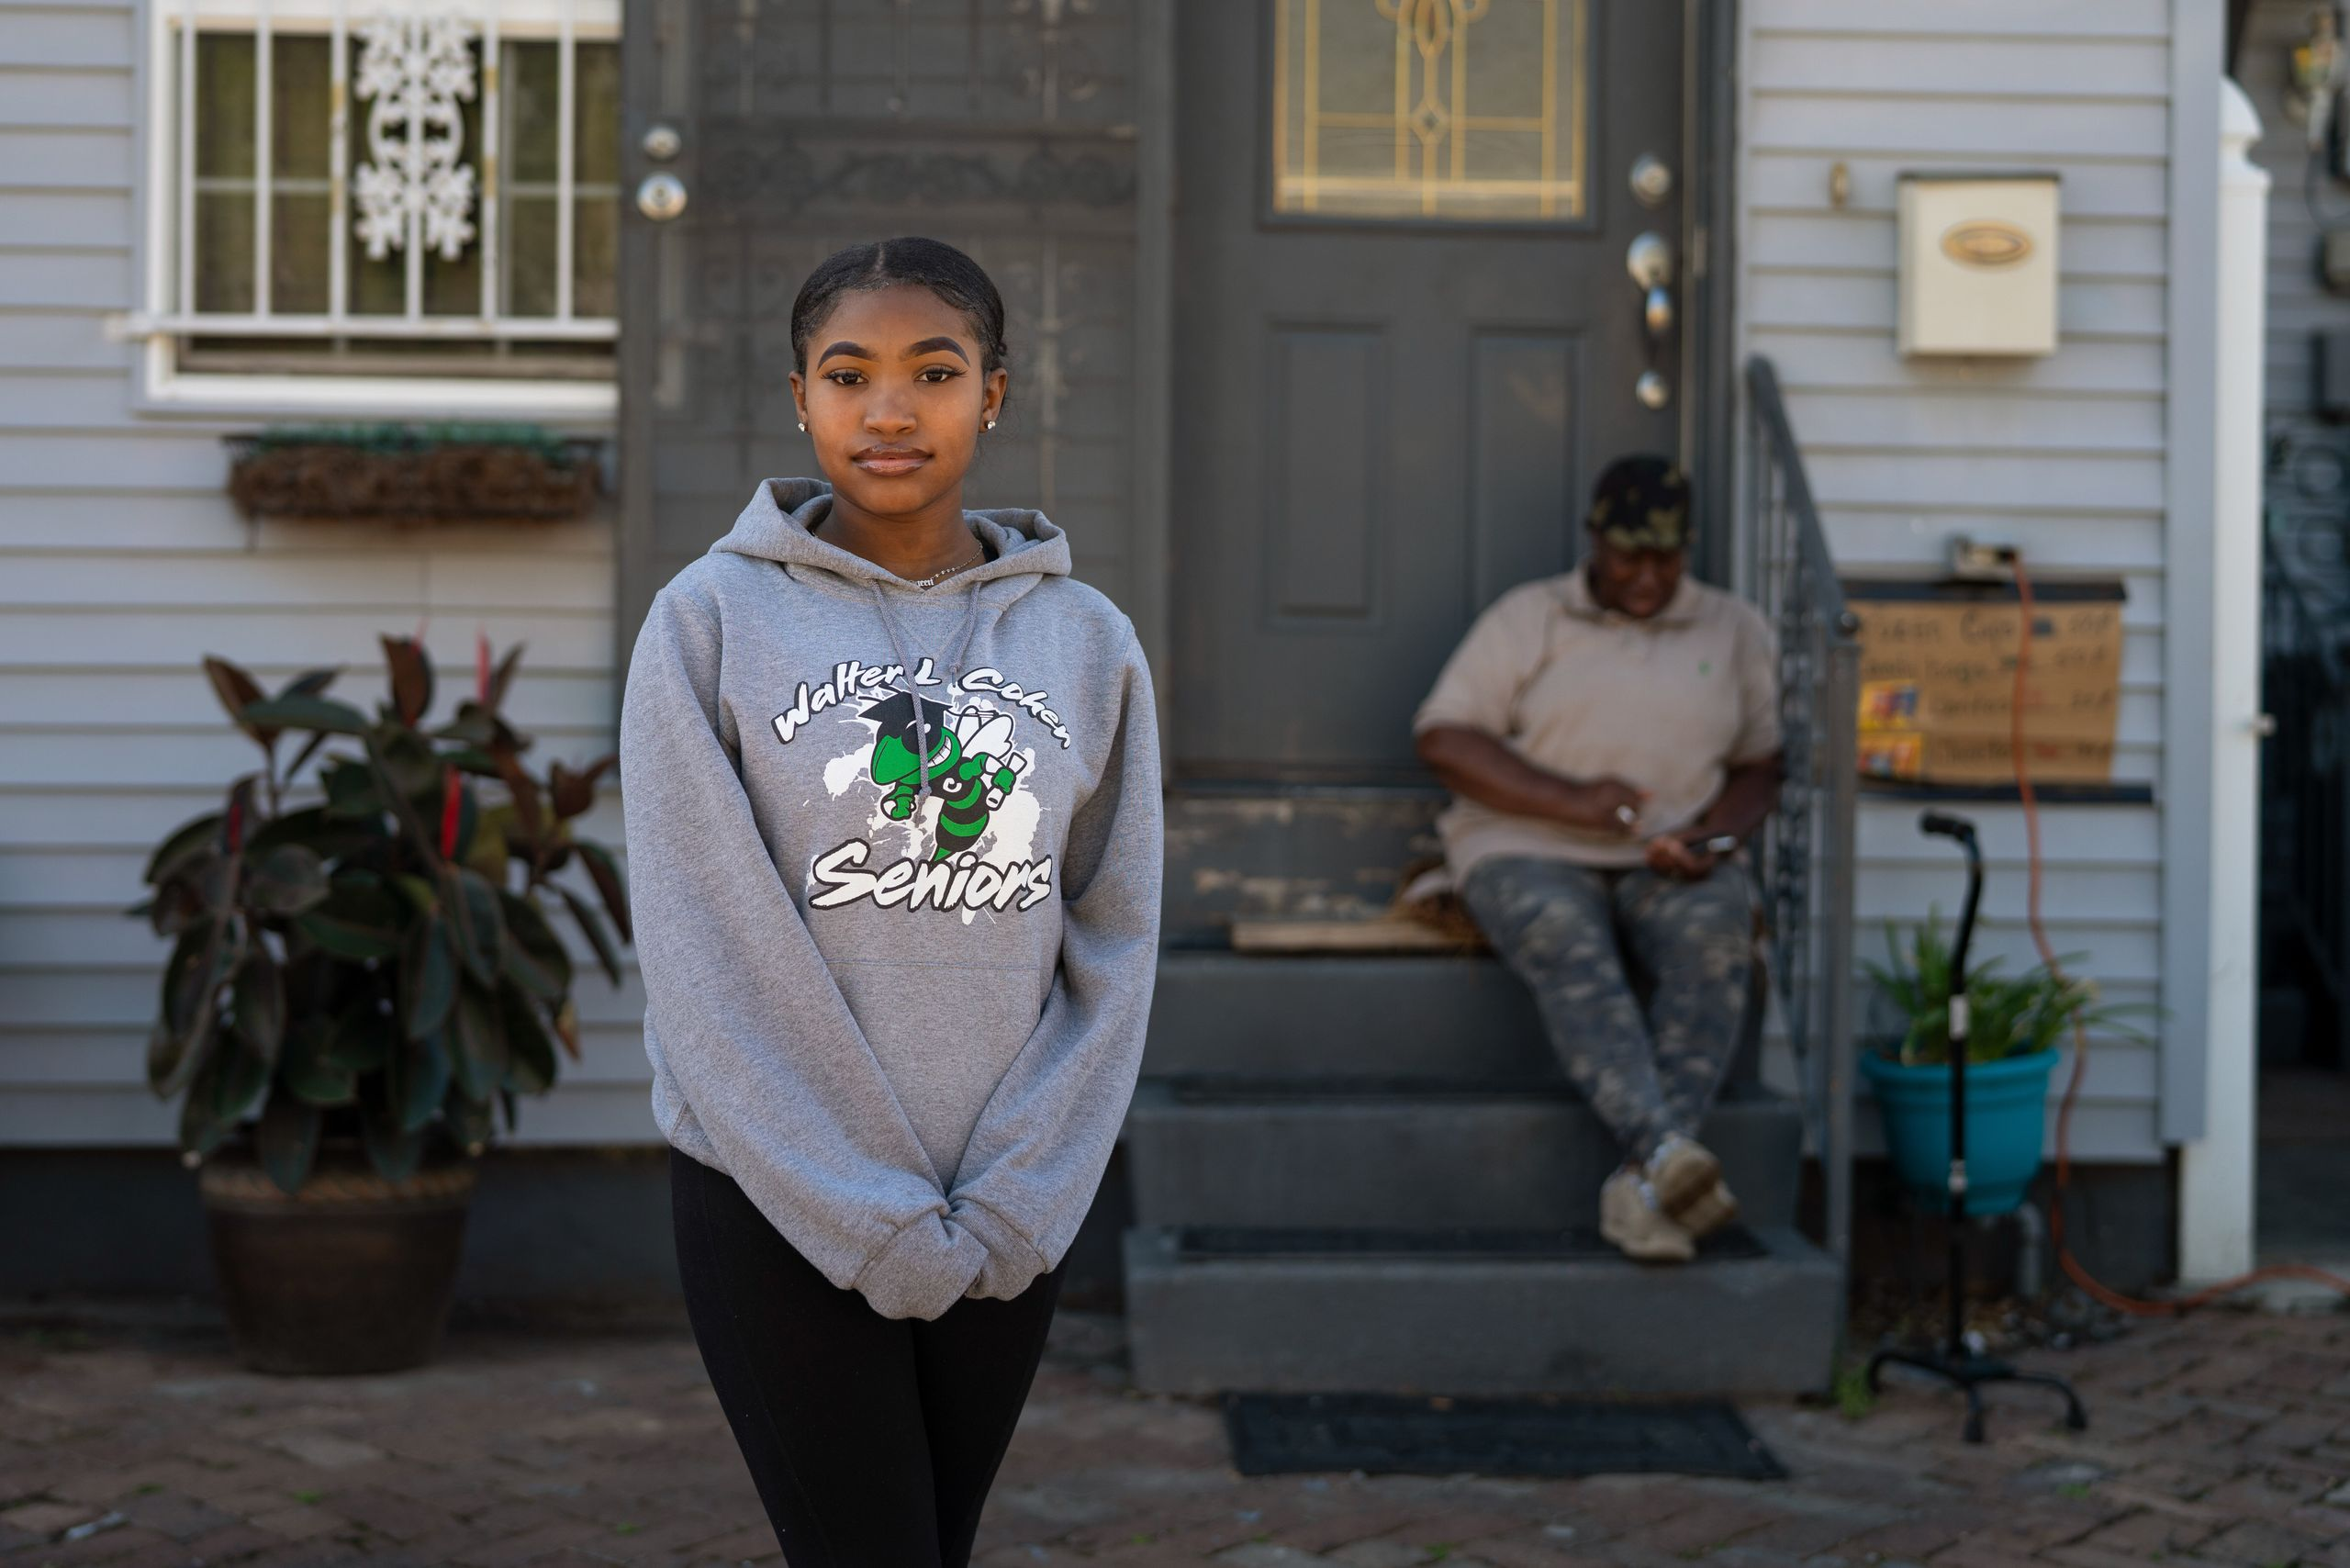 Satoriya Lambert stands in front of her home where she lives with her grandmother, Ether Bullock, 70, a retired teacher, who